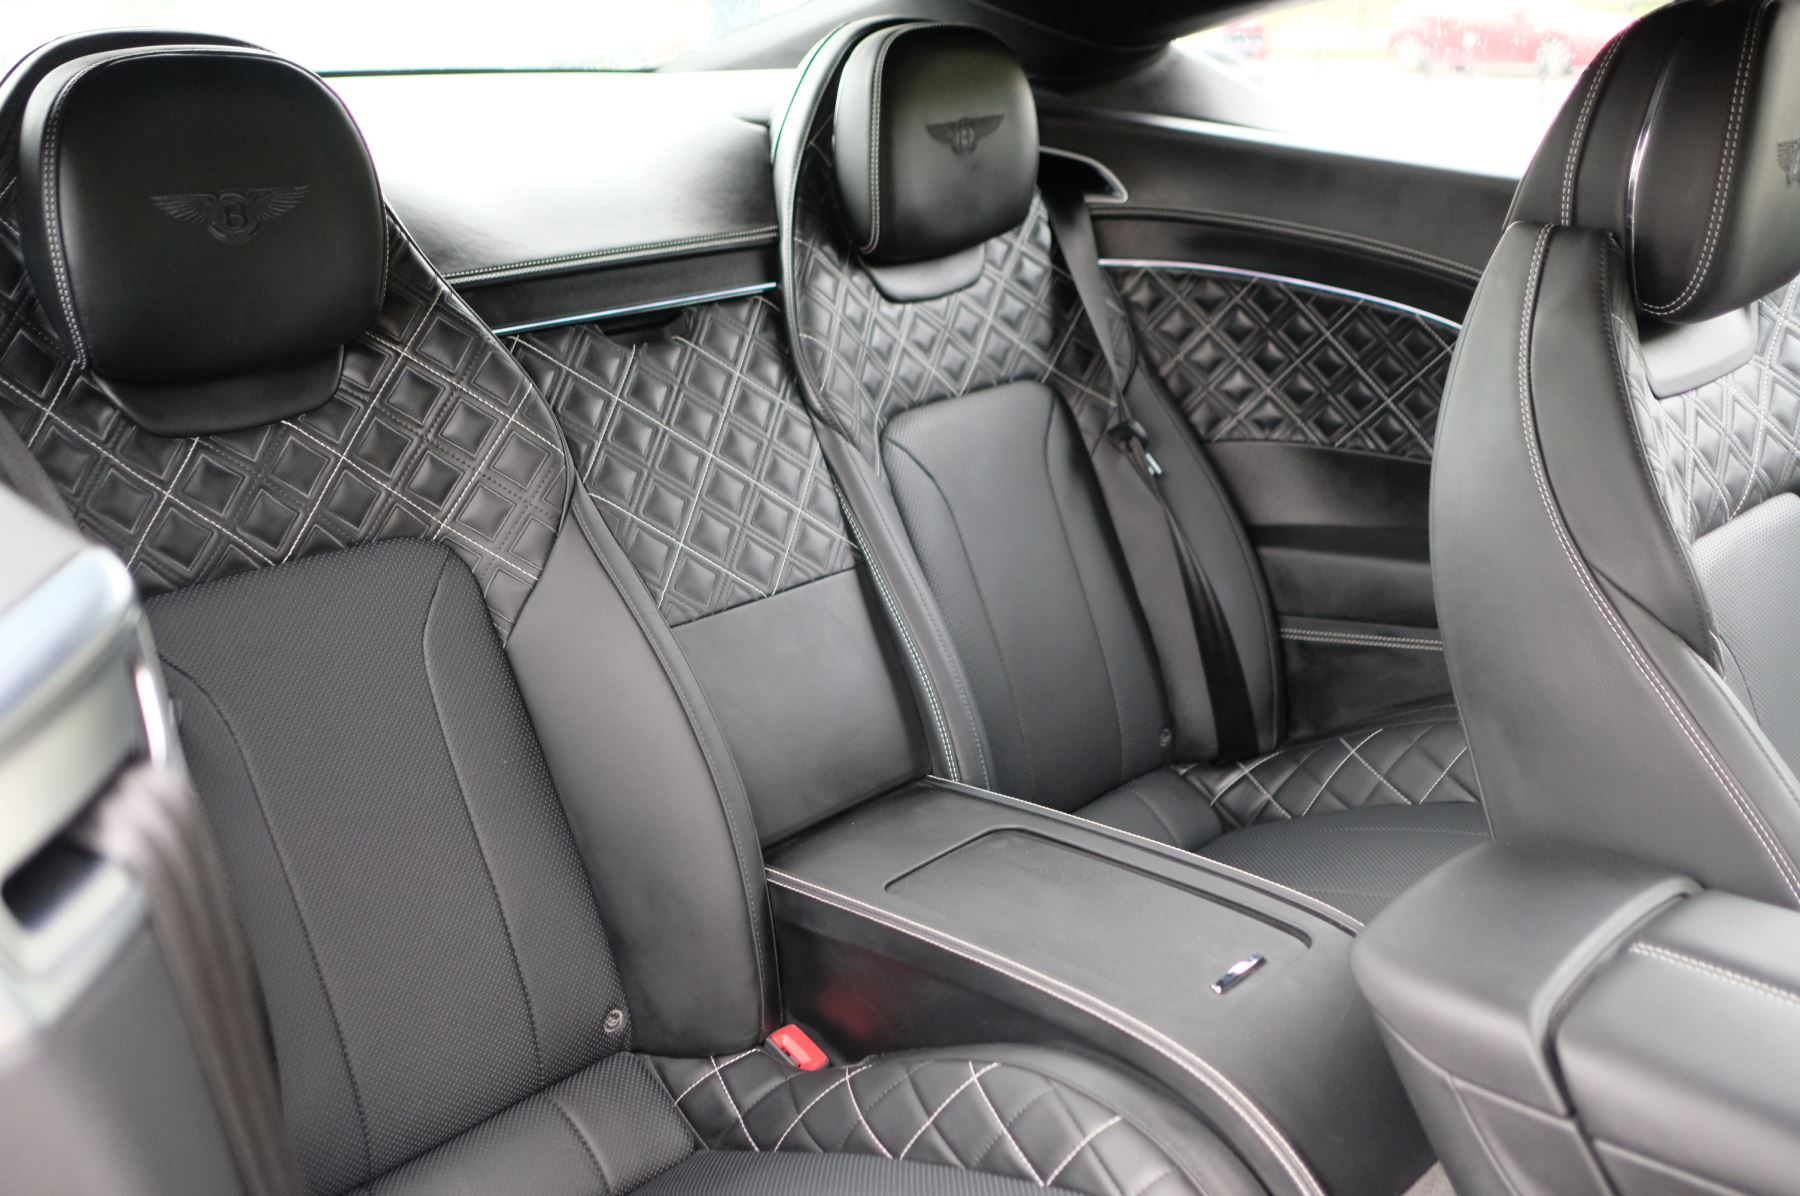 Bentley Continental GT First Edition 6.0 W12 2dr image 14